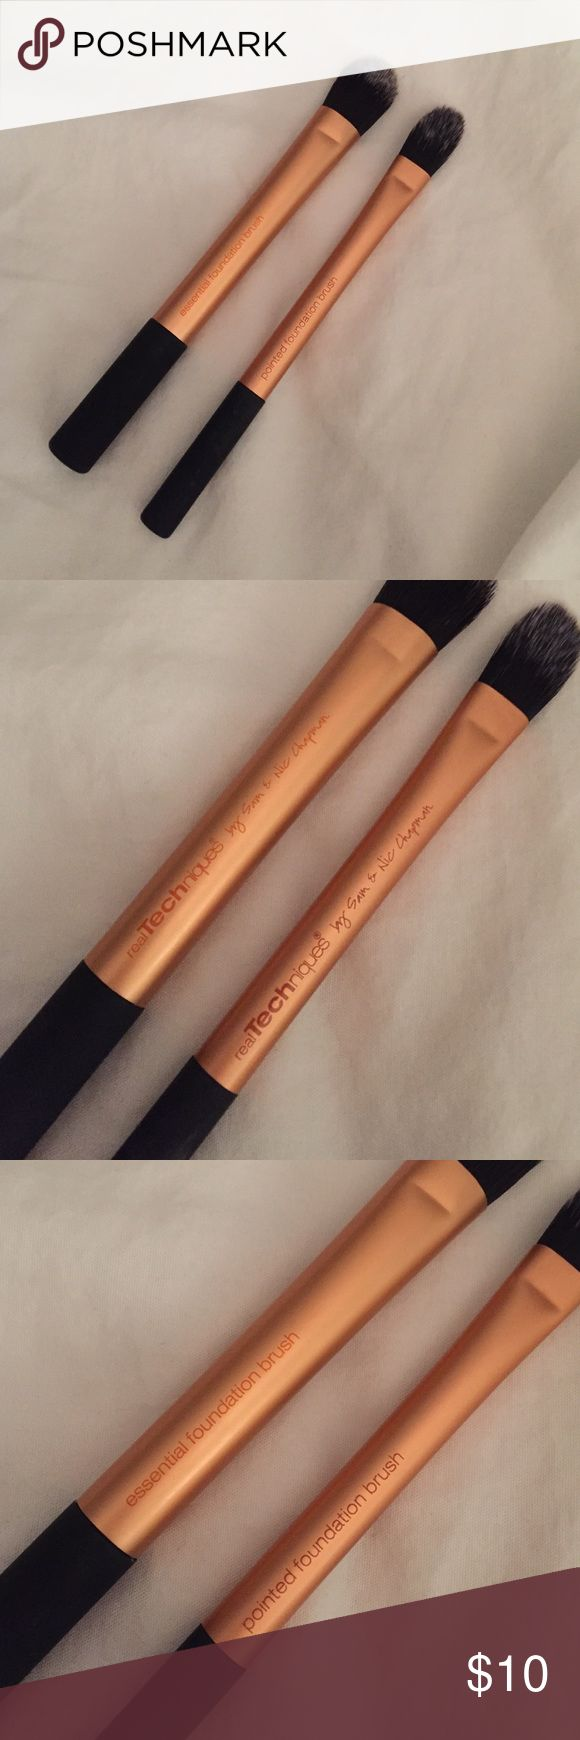 Real techniques foundation brushes Selling two real techniques brushes.  One is the essential foundation brush, the other is the pointed foundation brush.  Both are only available in sets.  I like other brushes from the sets but not these.  Used maybe twice. Real techniques Makeup Brushes & Tools